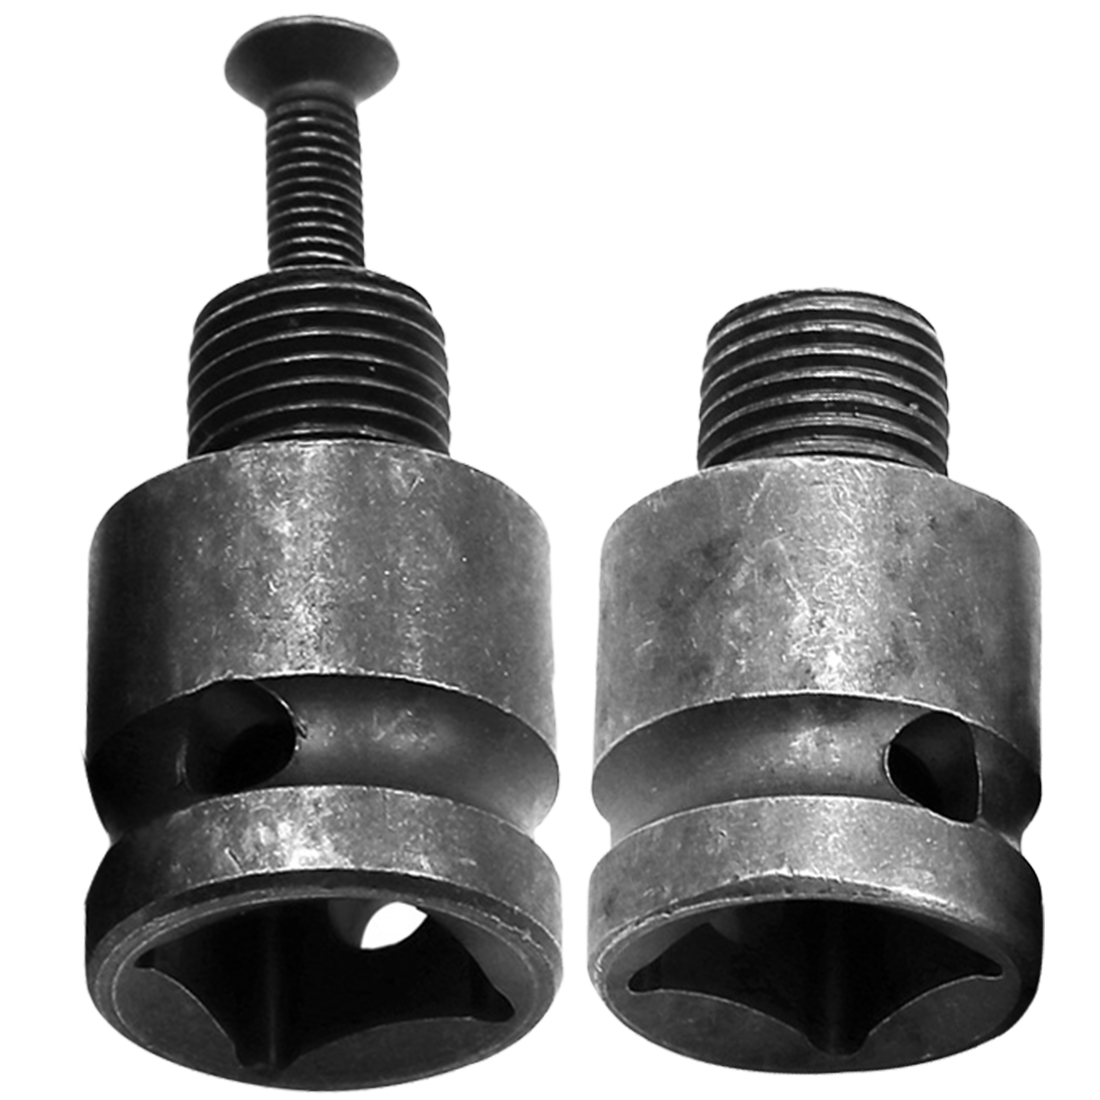 New Brand 1/2'' Drill Chuck Adaptor For Impact Wrench Conversion 1/2-20UNF With 1 Pcs Screw